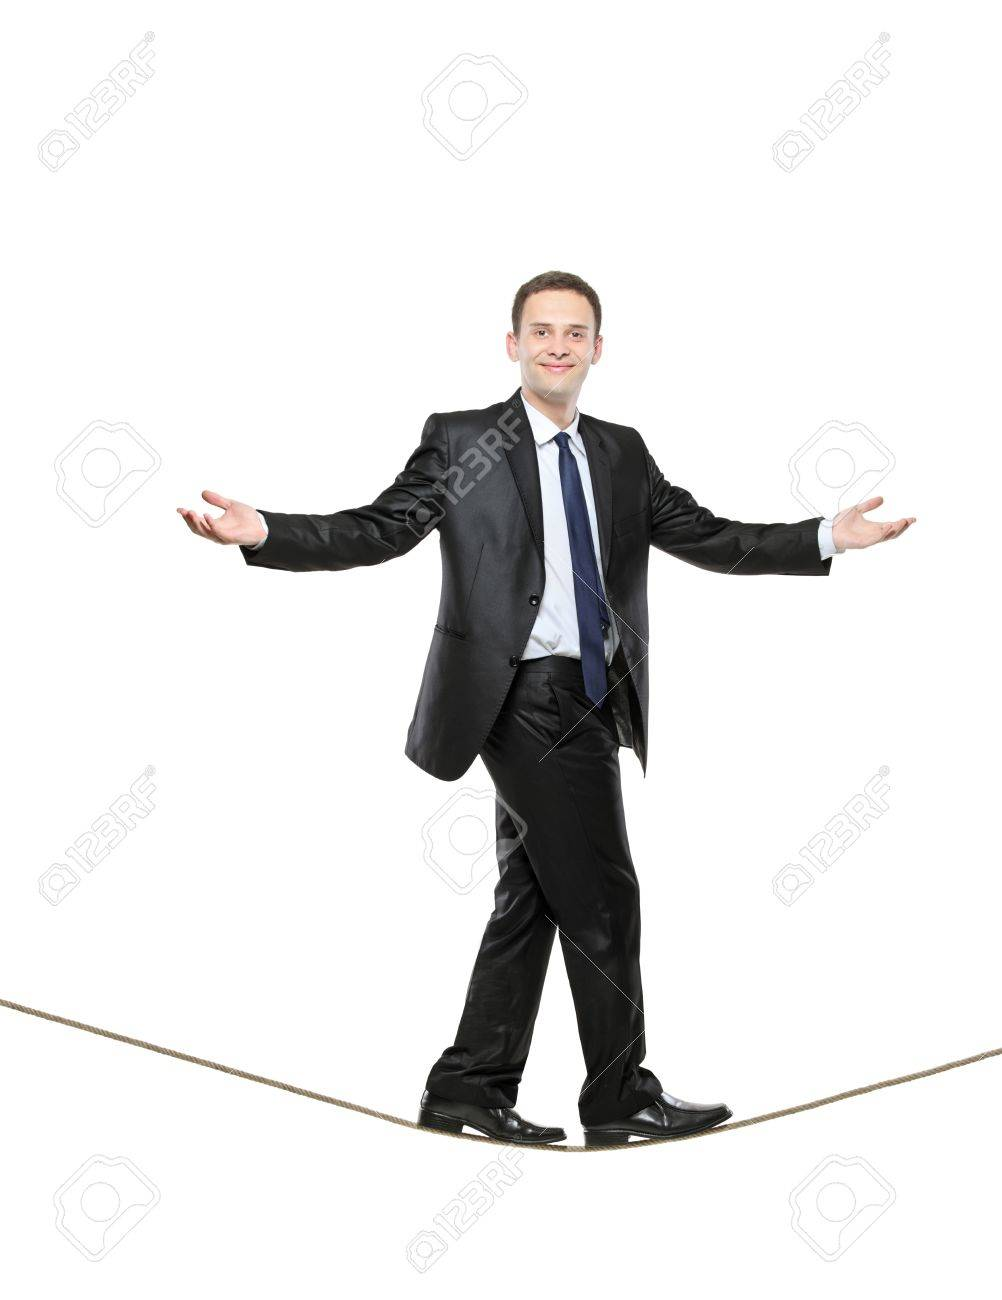 A business man walking on a high tightrope isolated on white background Stock Photo - 6971062